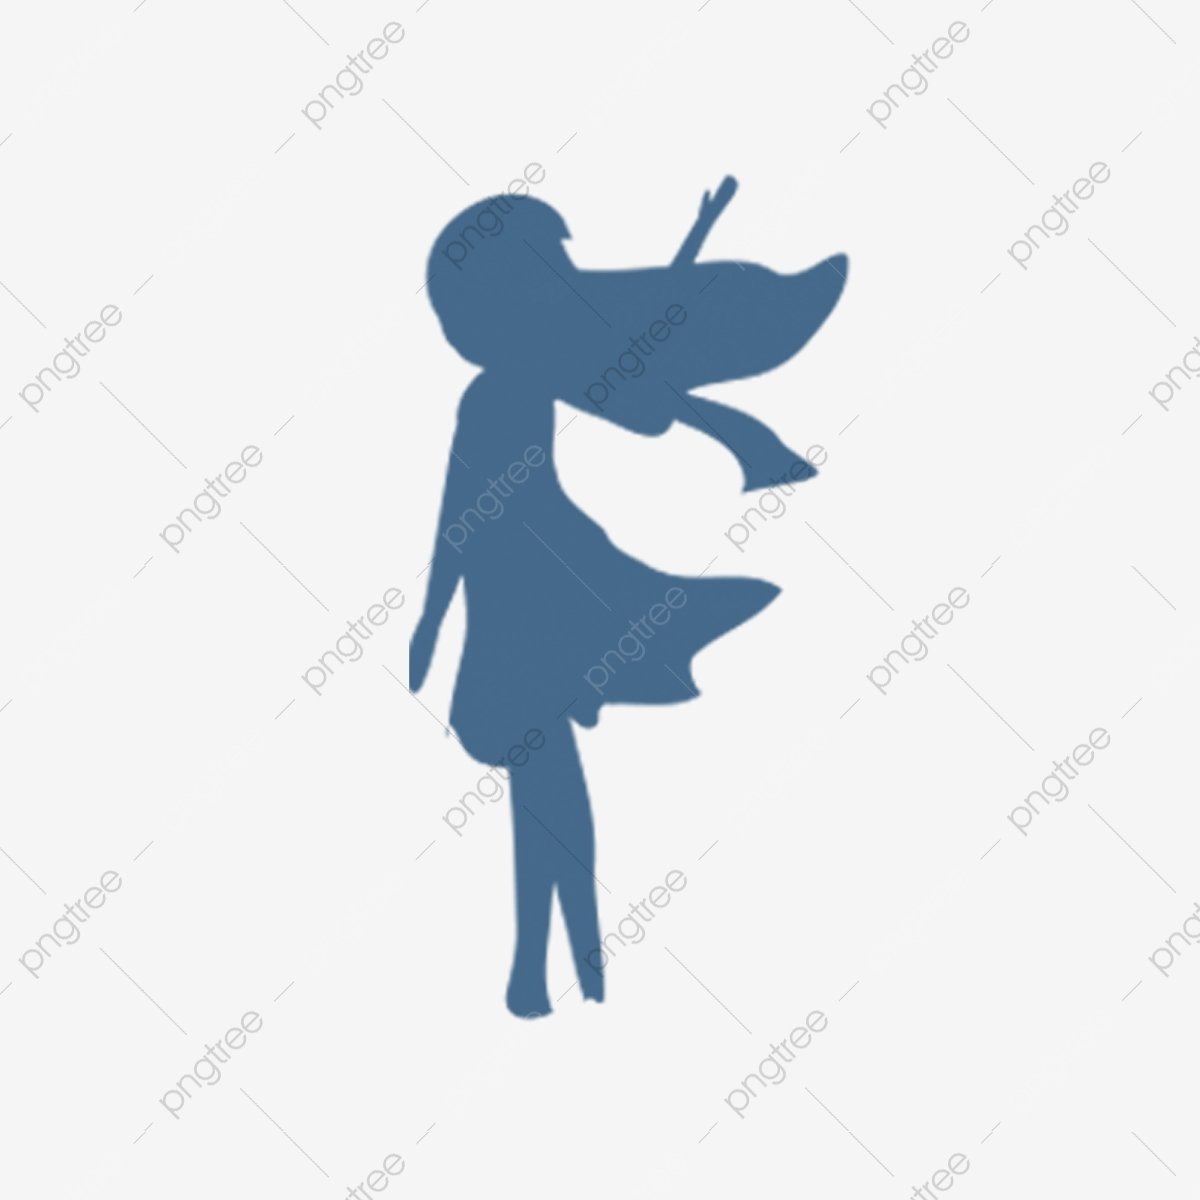 Character Silhouette Girl Girl Silhouette Cartoon Illustration Png Transparent Clipart Image And Psd File For Free Download